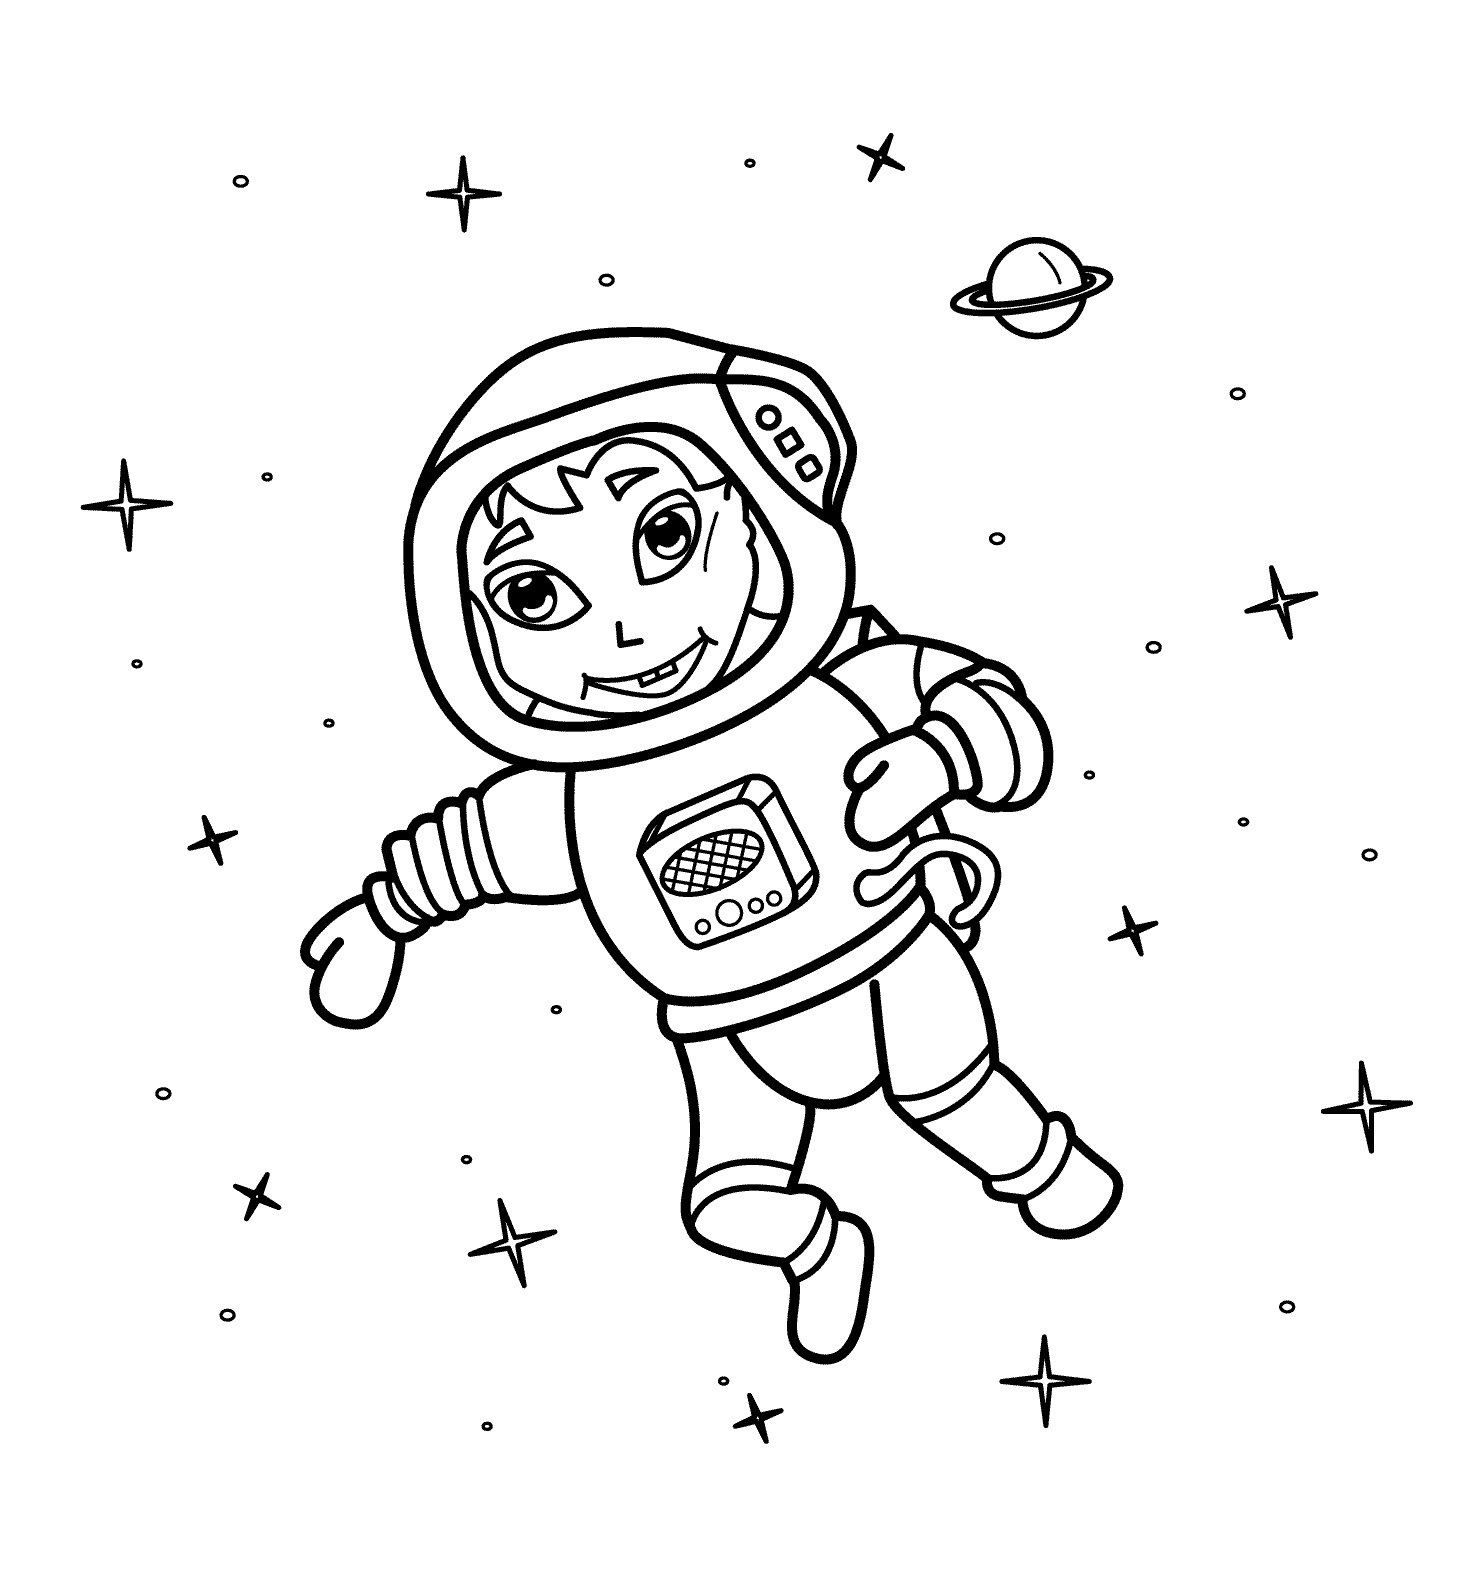 Simple Astronaut Drawing At Getdrawings